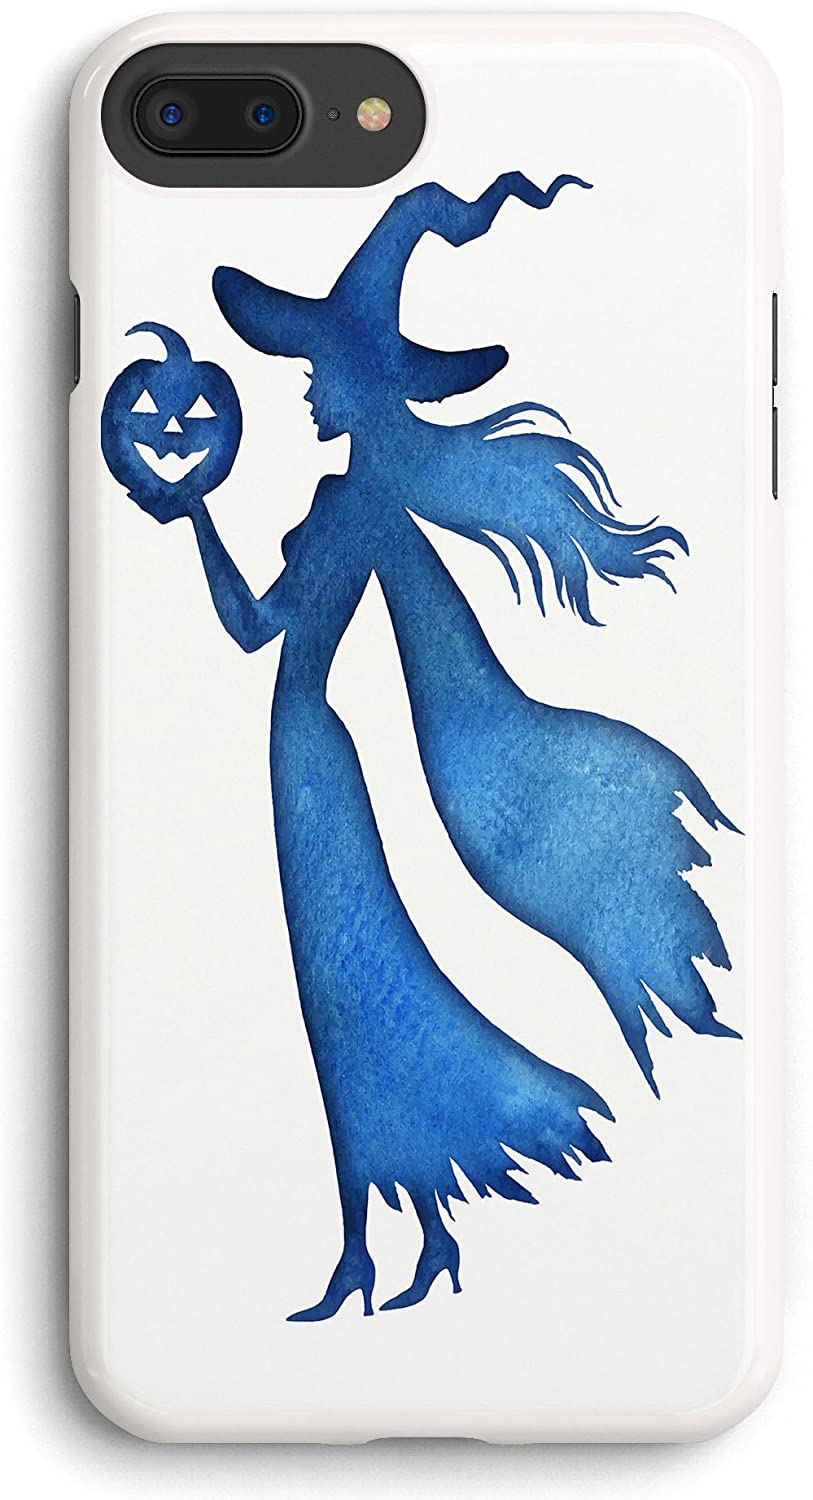 Witch with Halloween Pumpkin iPhone 7PLUS /8 Plus Case White,PC Hard Case for iPhone 7PLUS /8 Plus